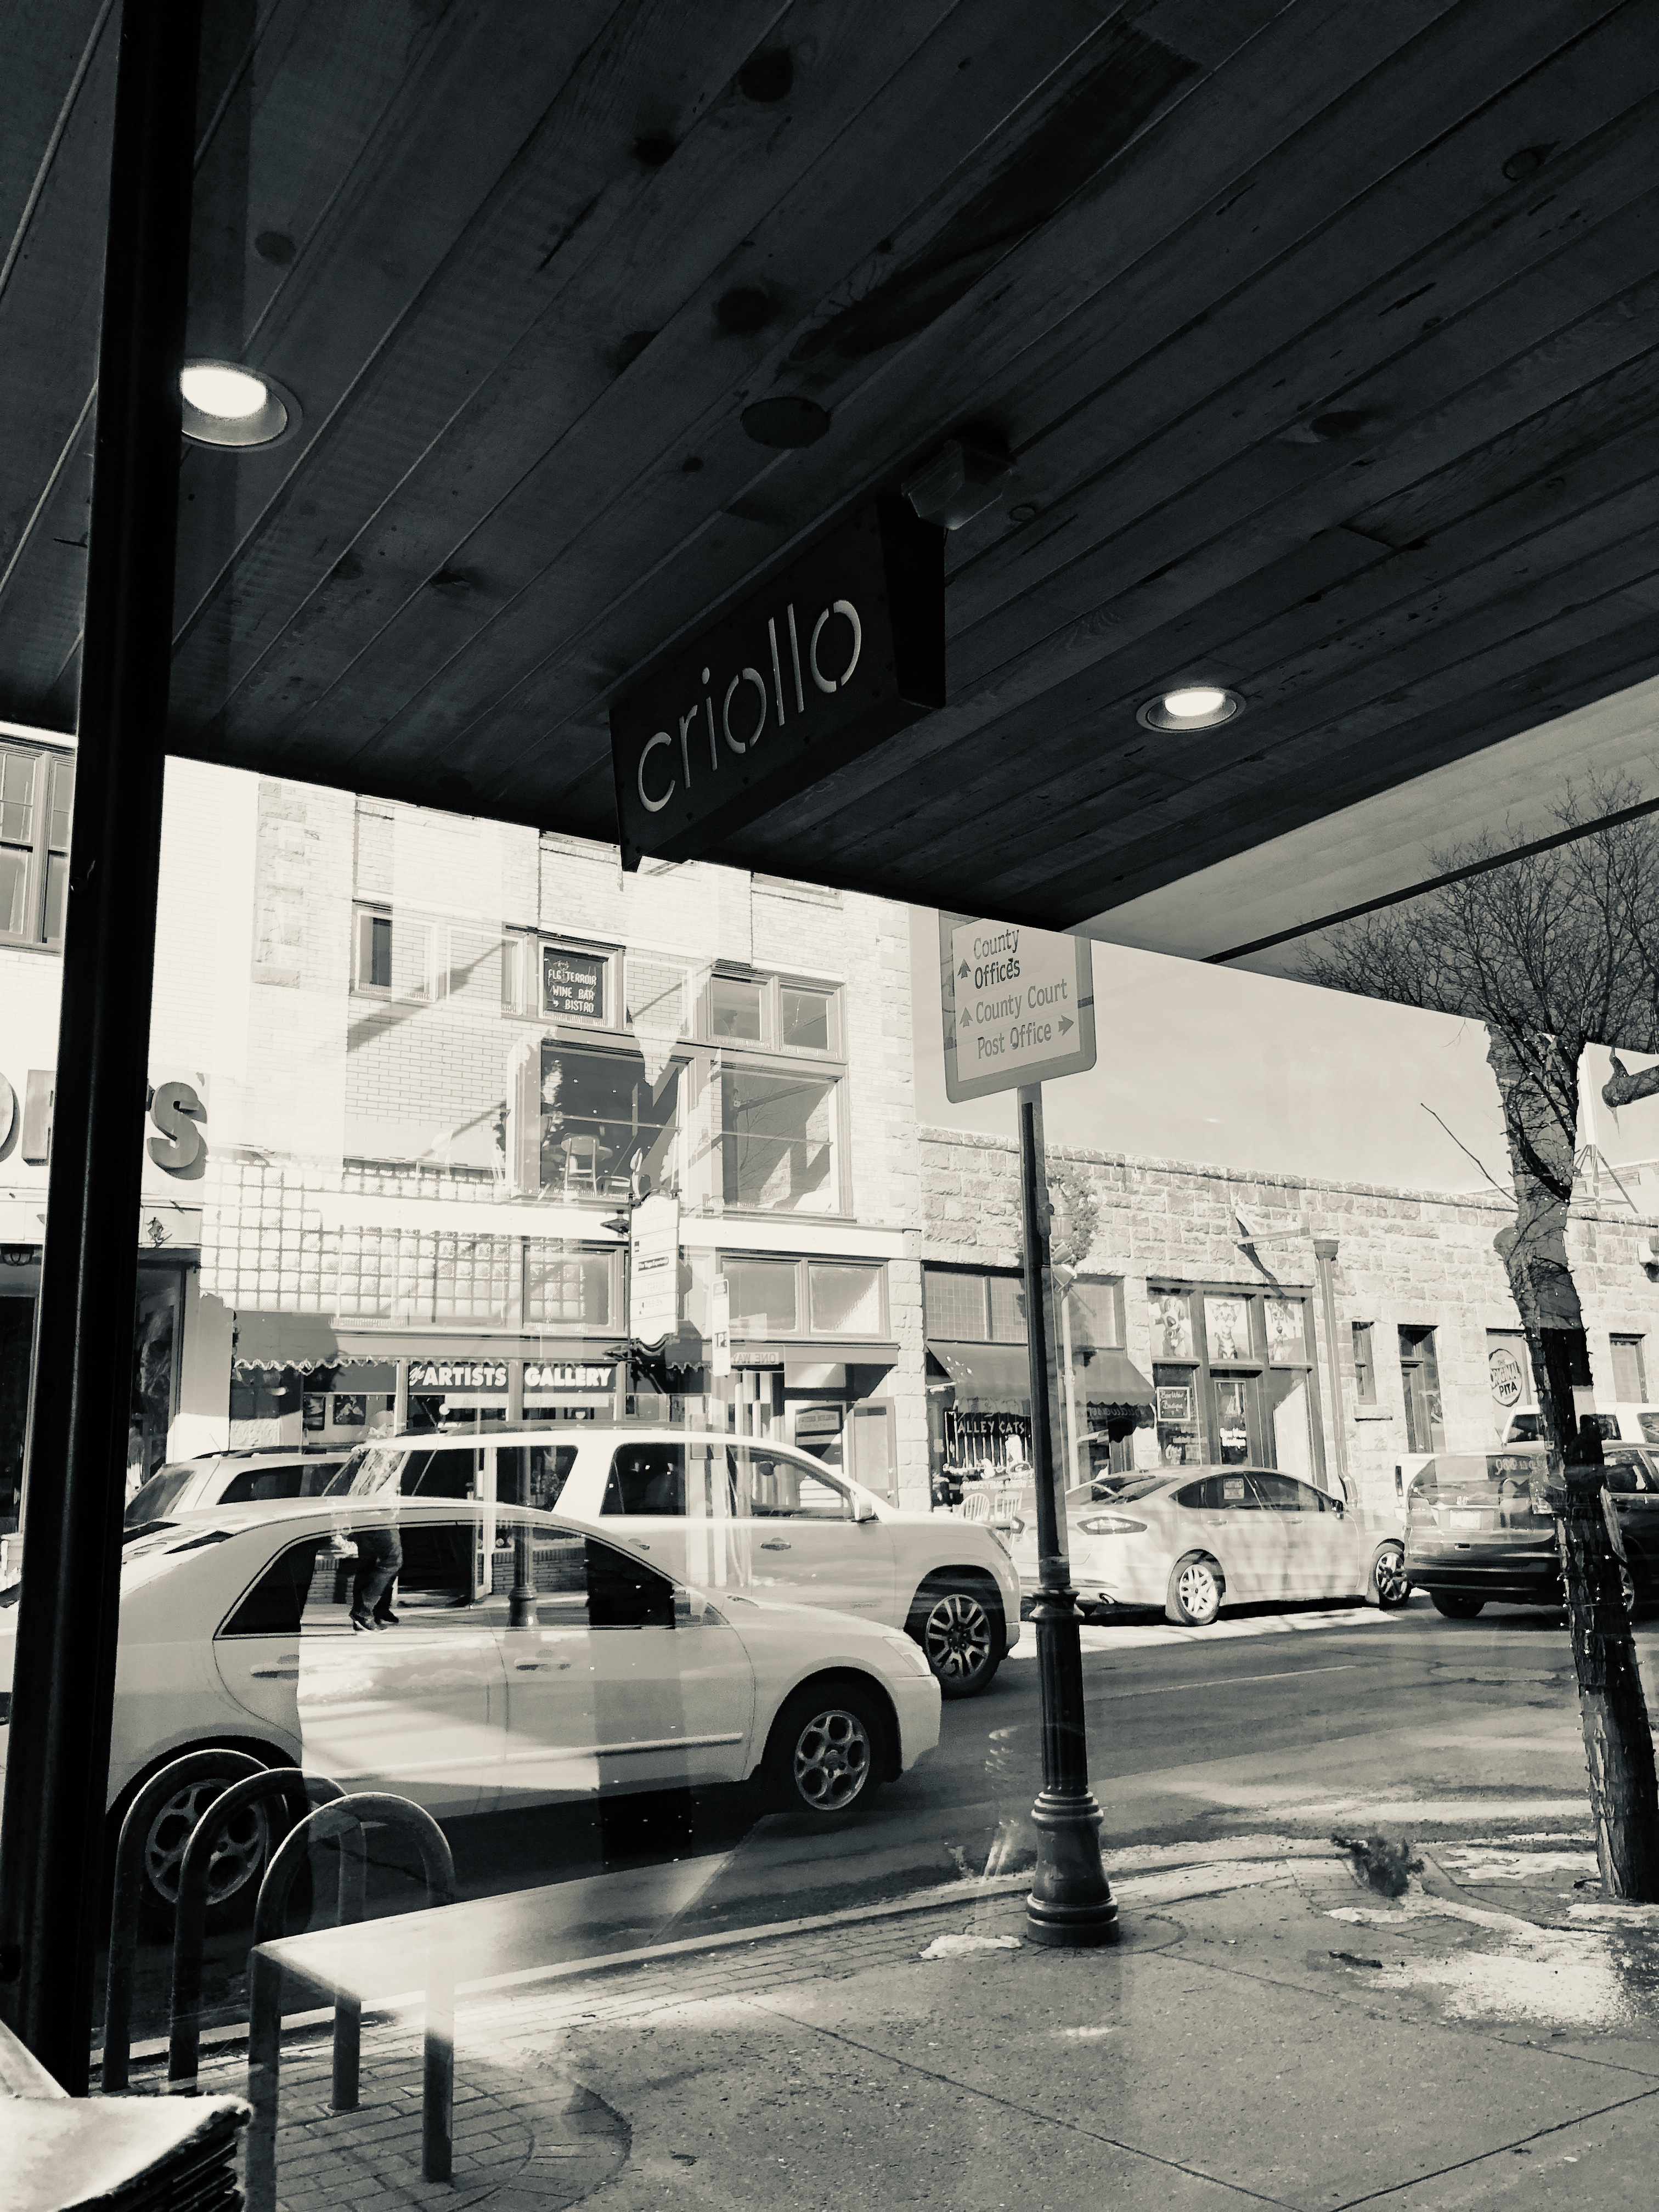 A view out a window, under a sign reading CRIOLLO, showing storefronts and cars